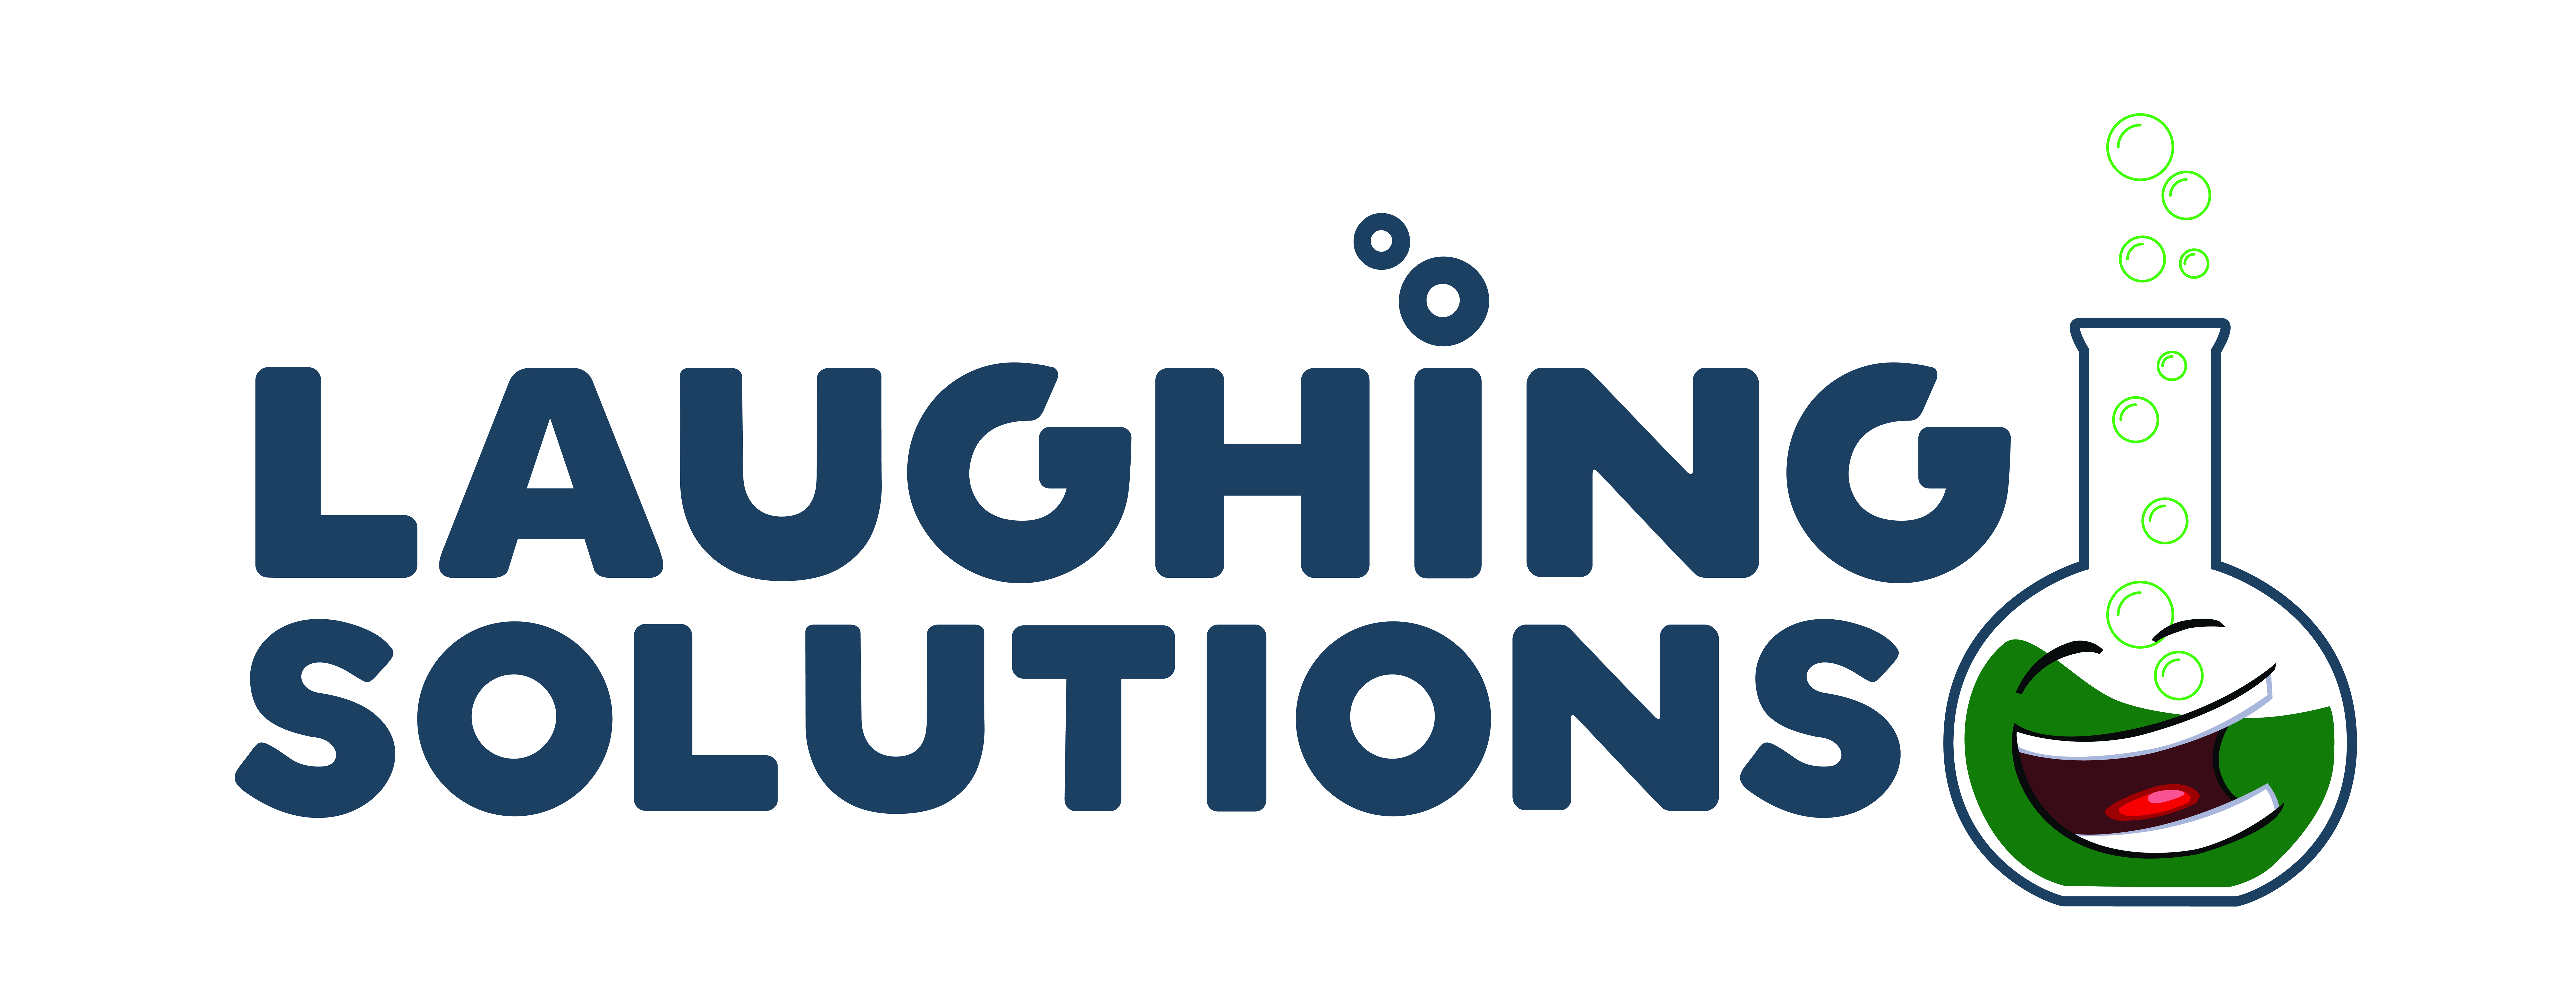 Laughing Solutions internet marketing